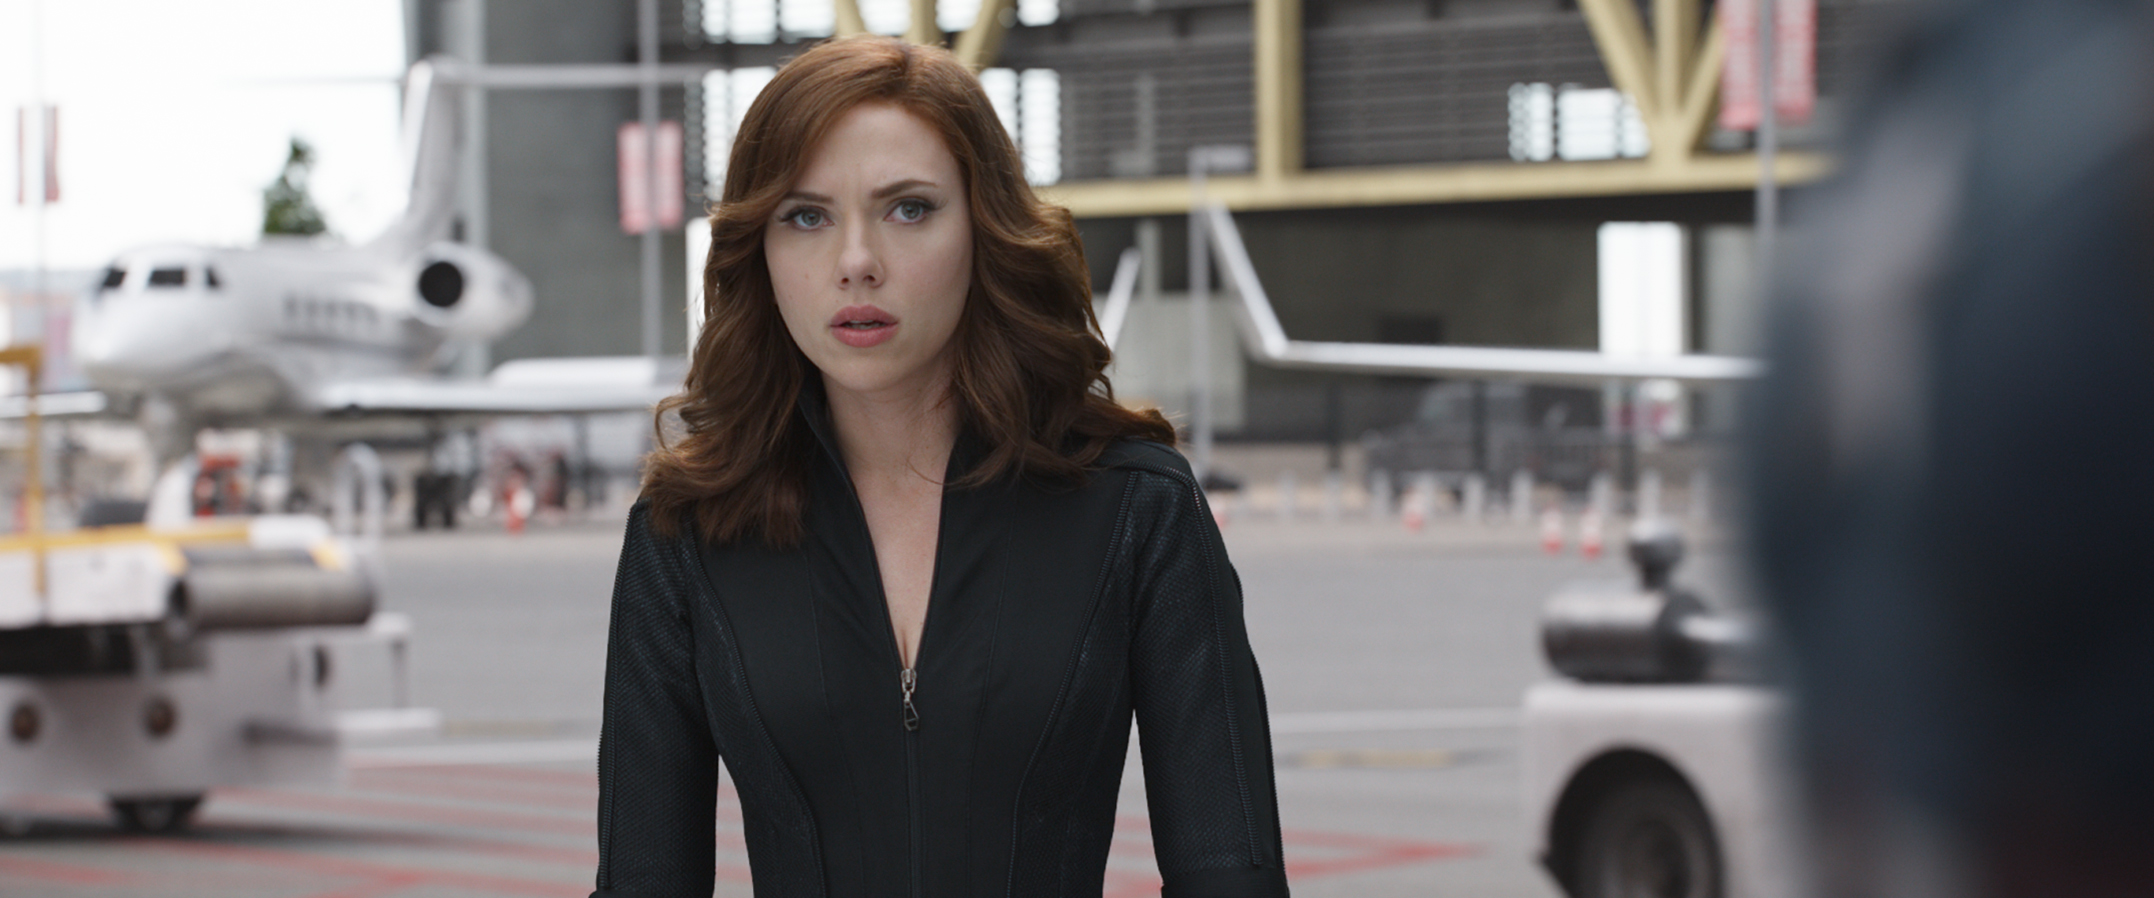 Marvel's Captain America: Civil War Black Widow/Natasha Romanoff (Scarlett Johansson) Photo Credit: Film Frame © Marvel 2016